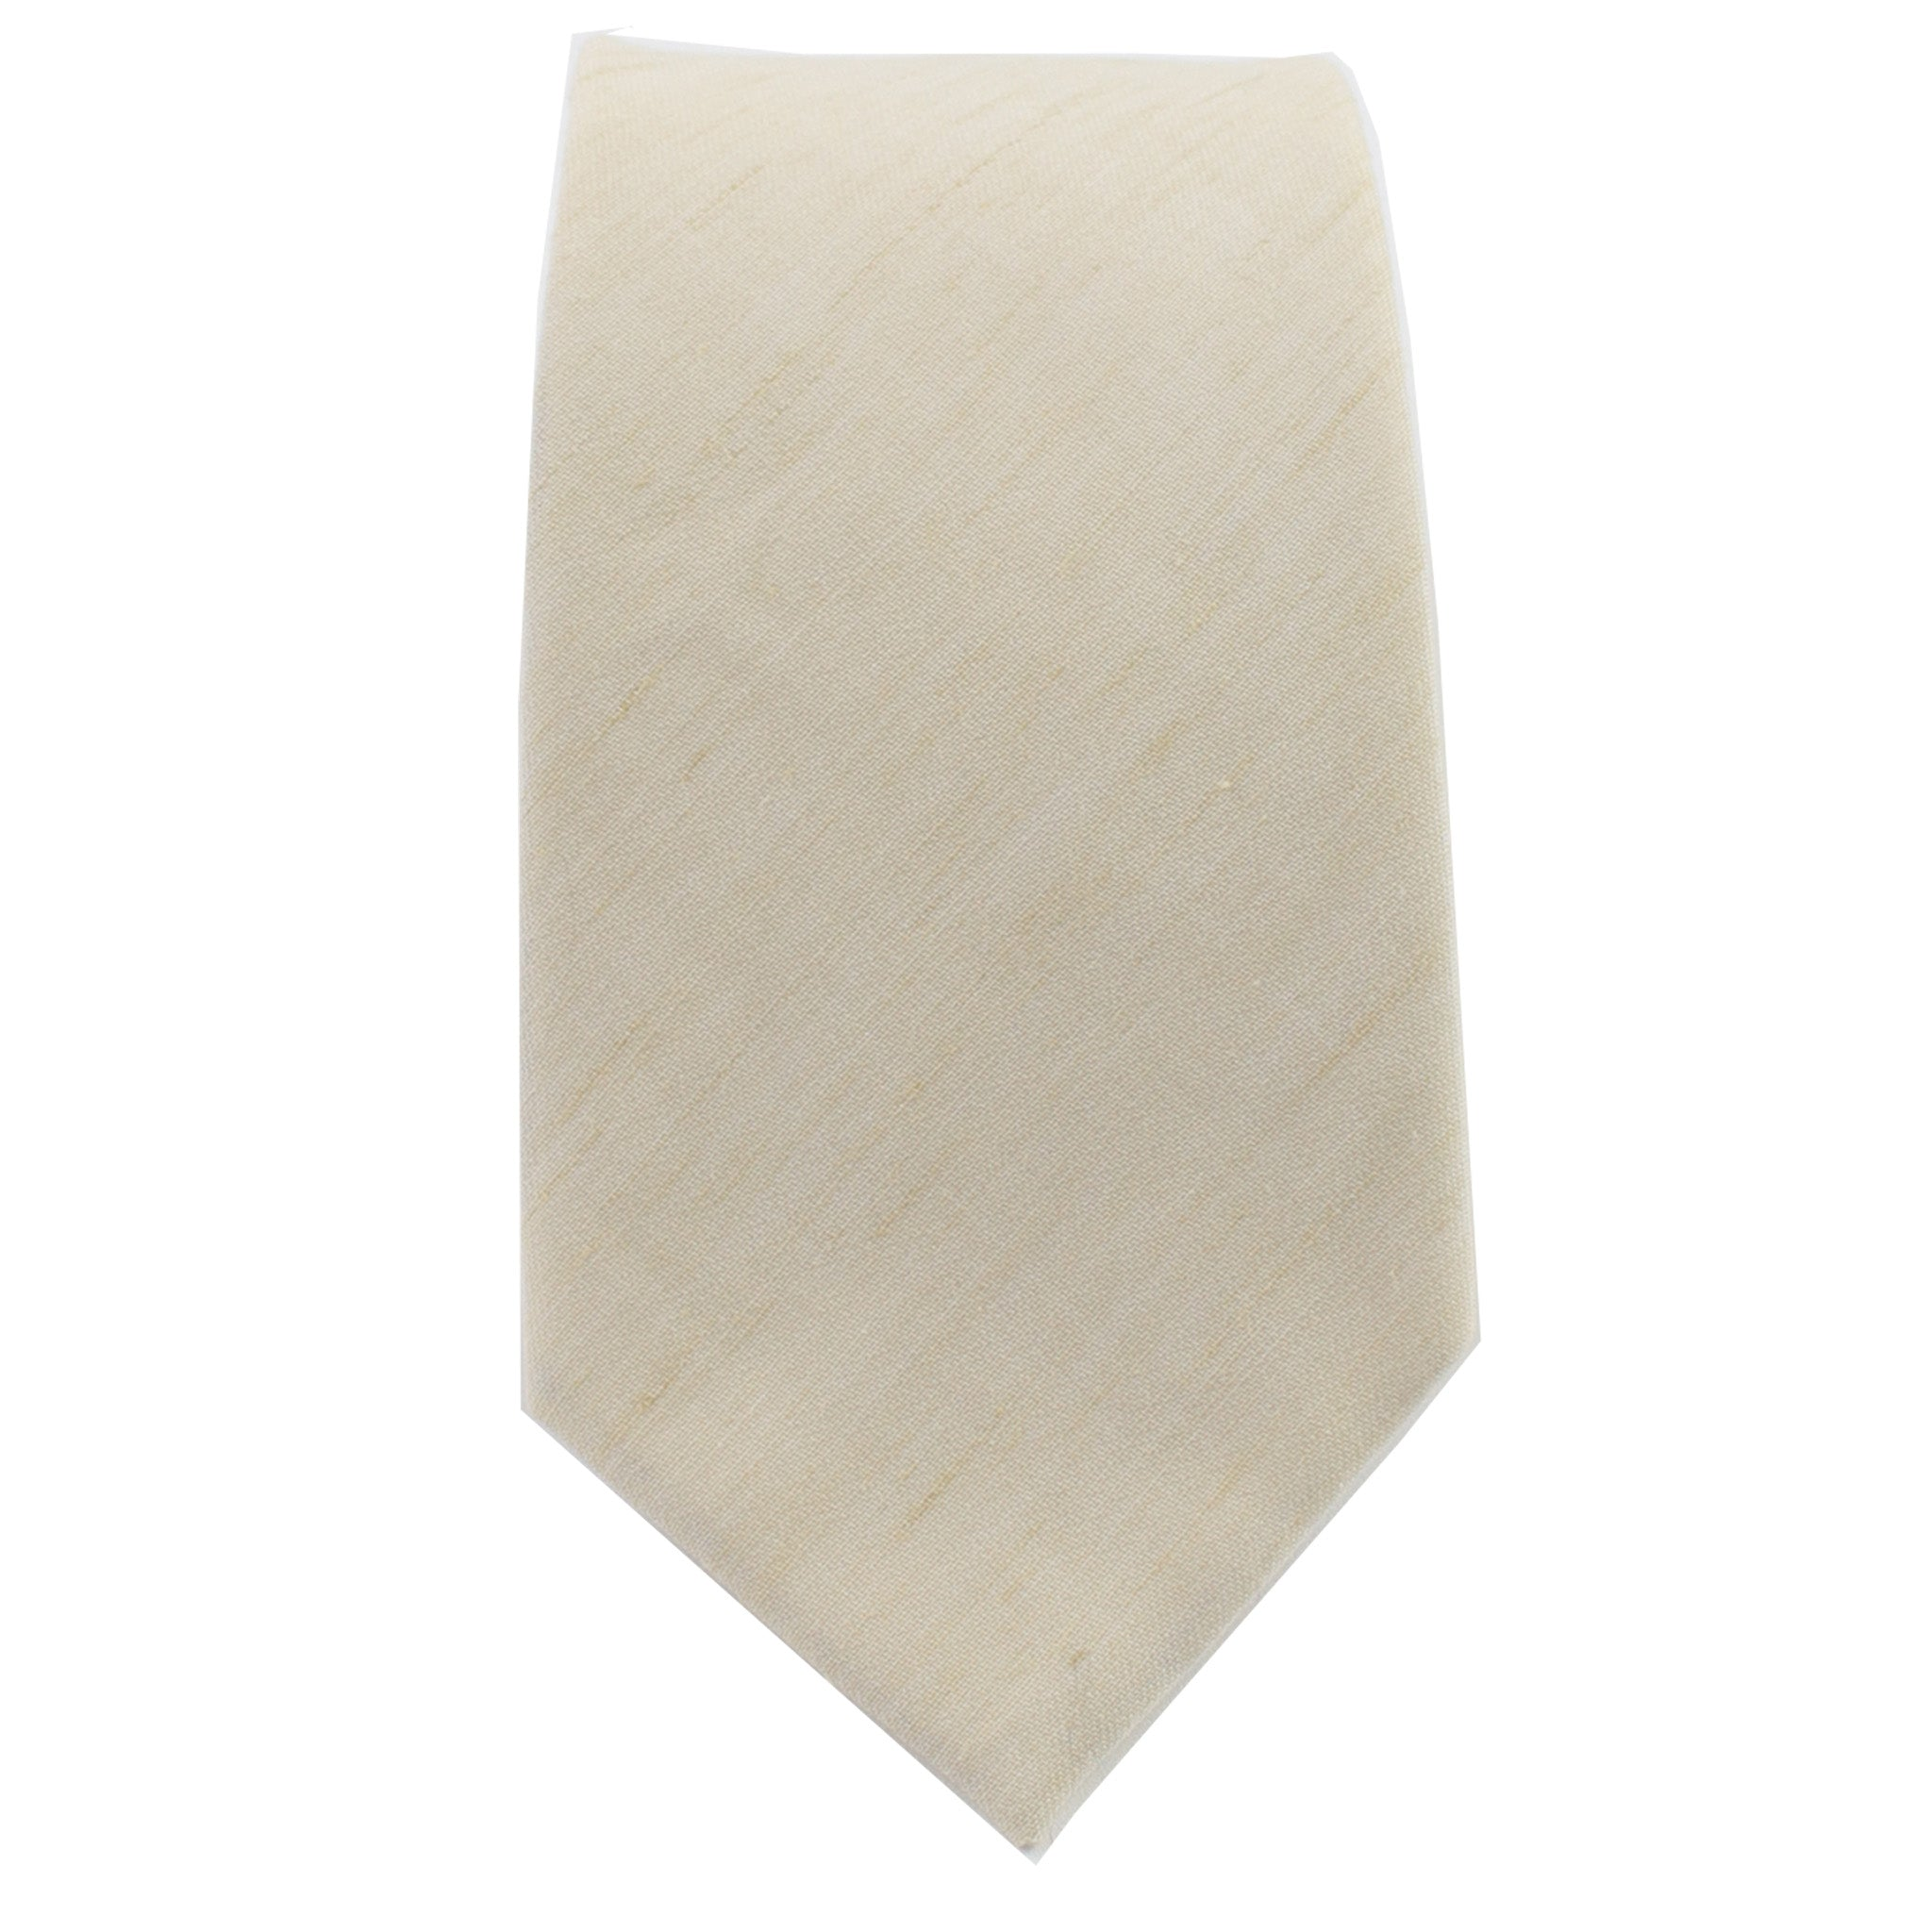 Lightweight Ivory Tie from DIBI